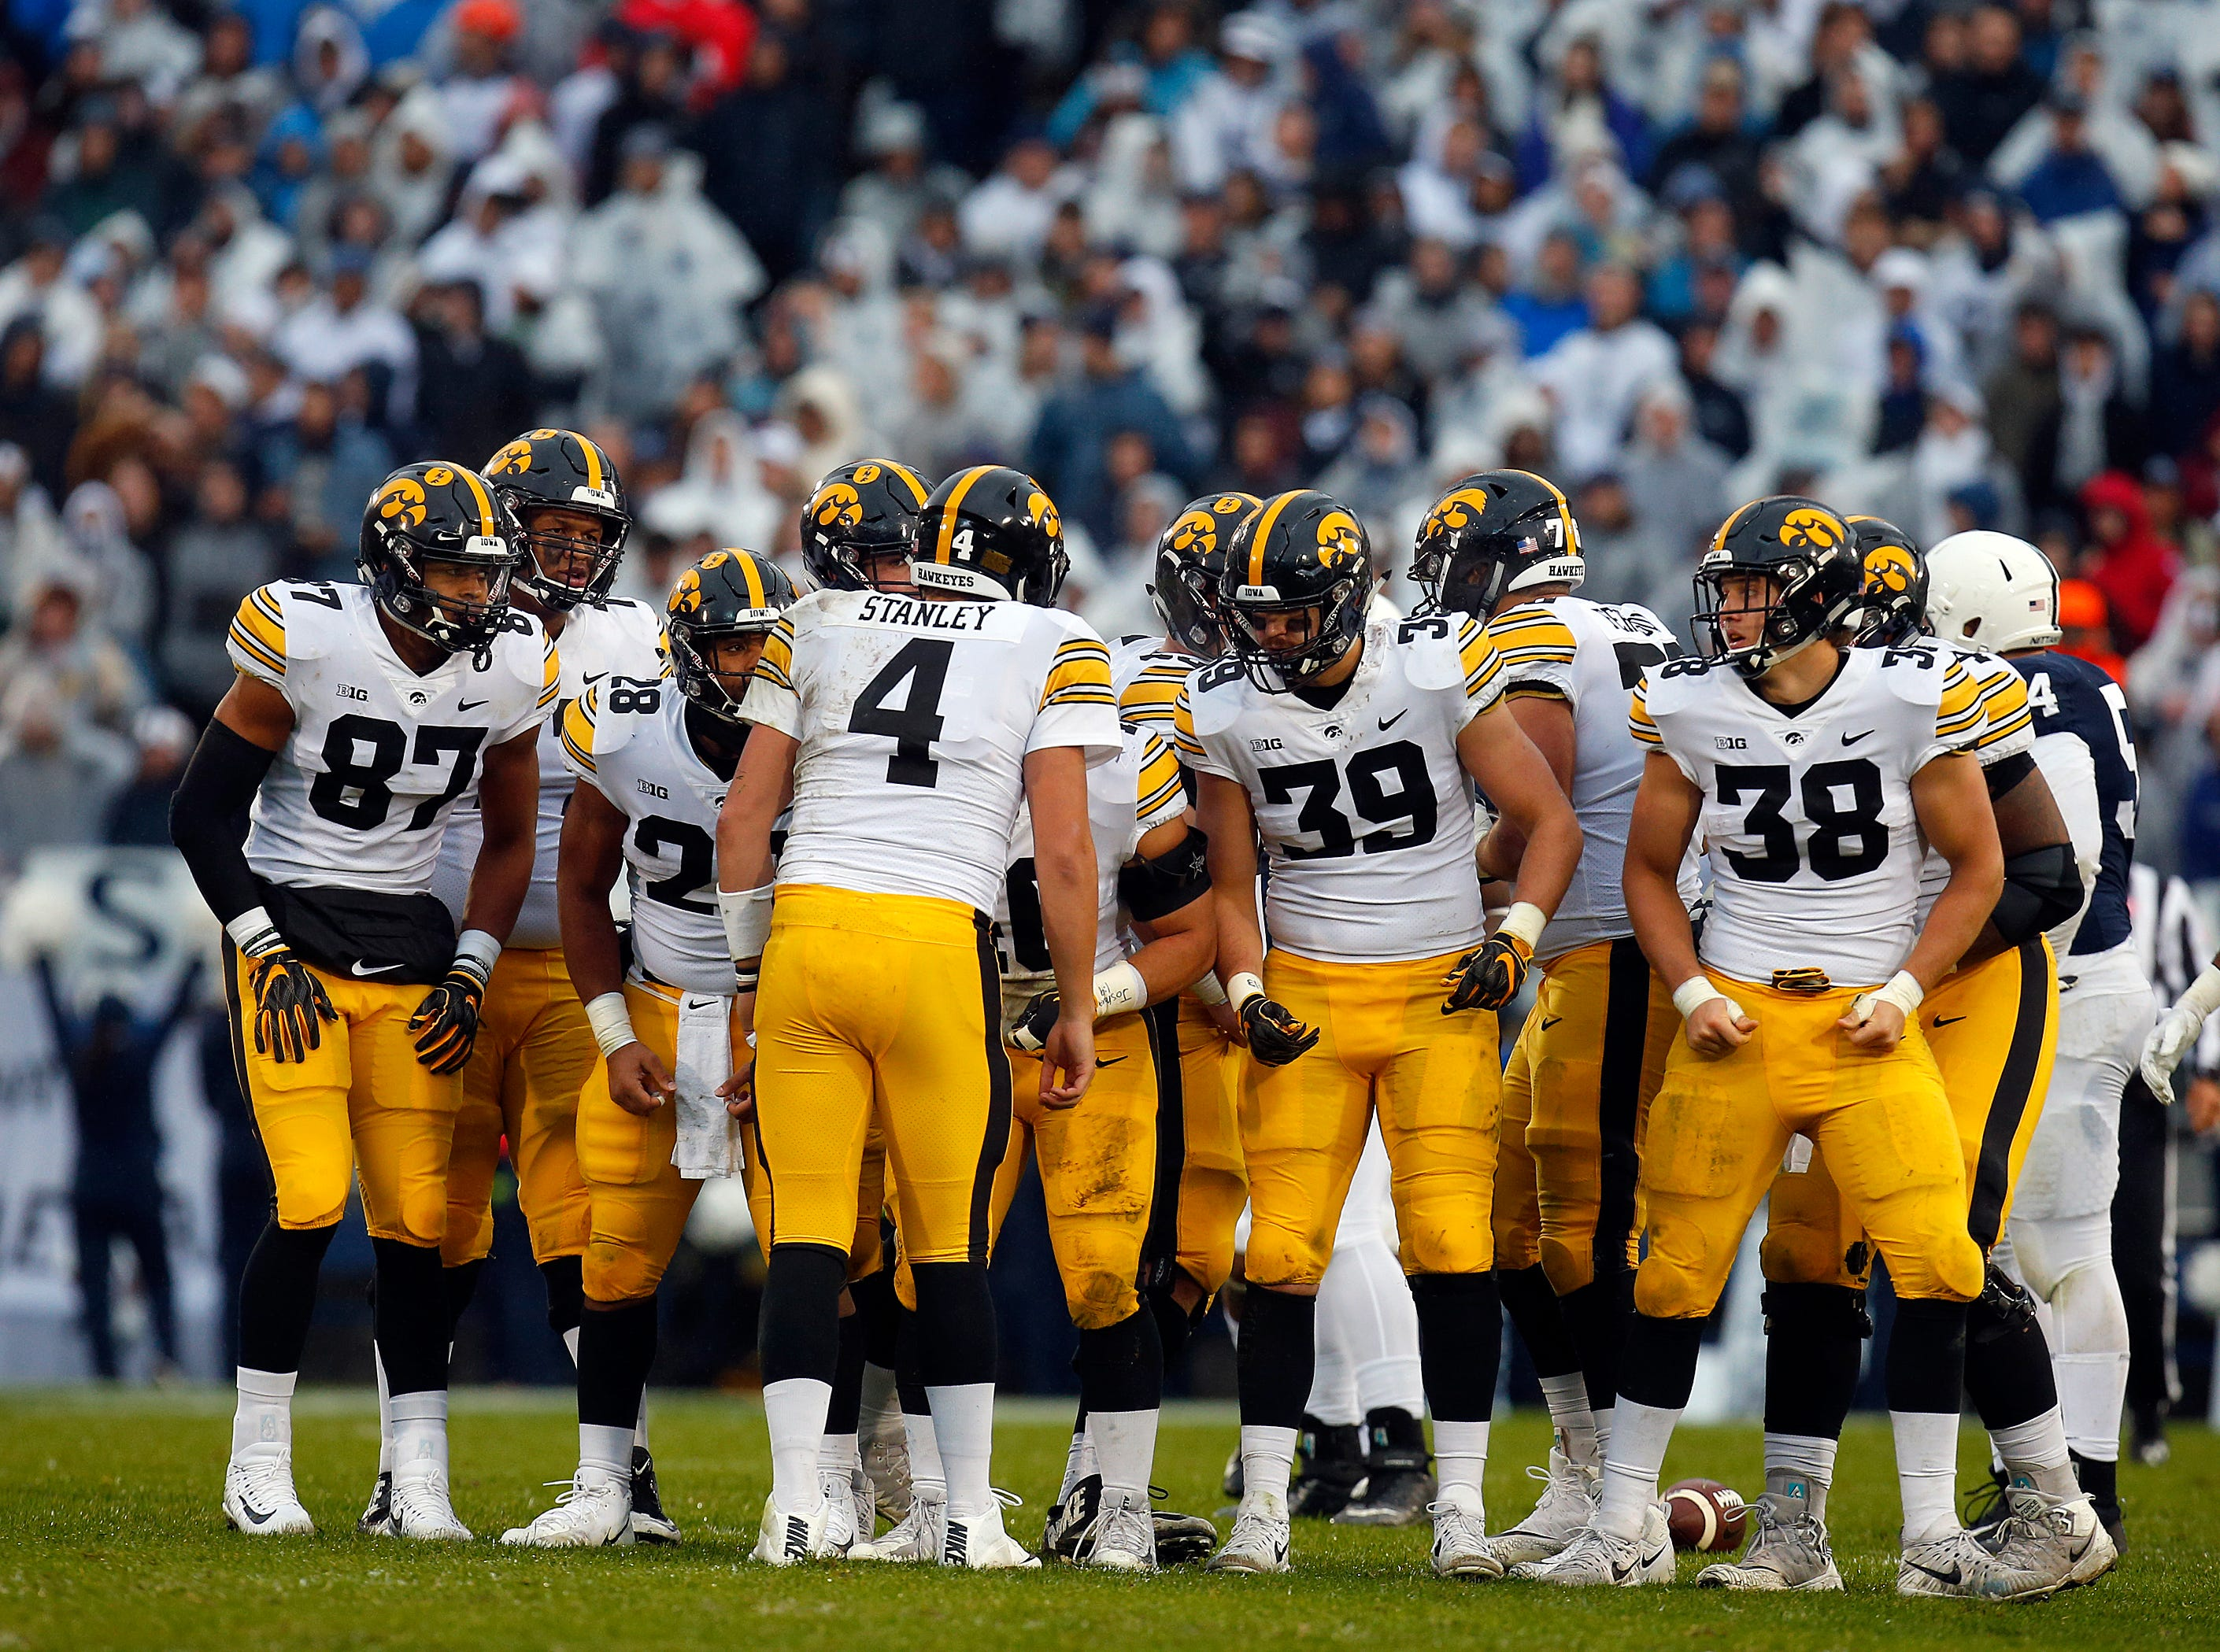 Iowa quarterback Nate Stanley (4) had trouble getting ample time to find his receivers, and as a result he hurried his throws in most situations in a 30-24 loss at Penn State.